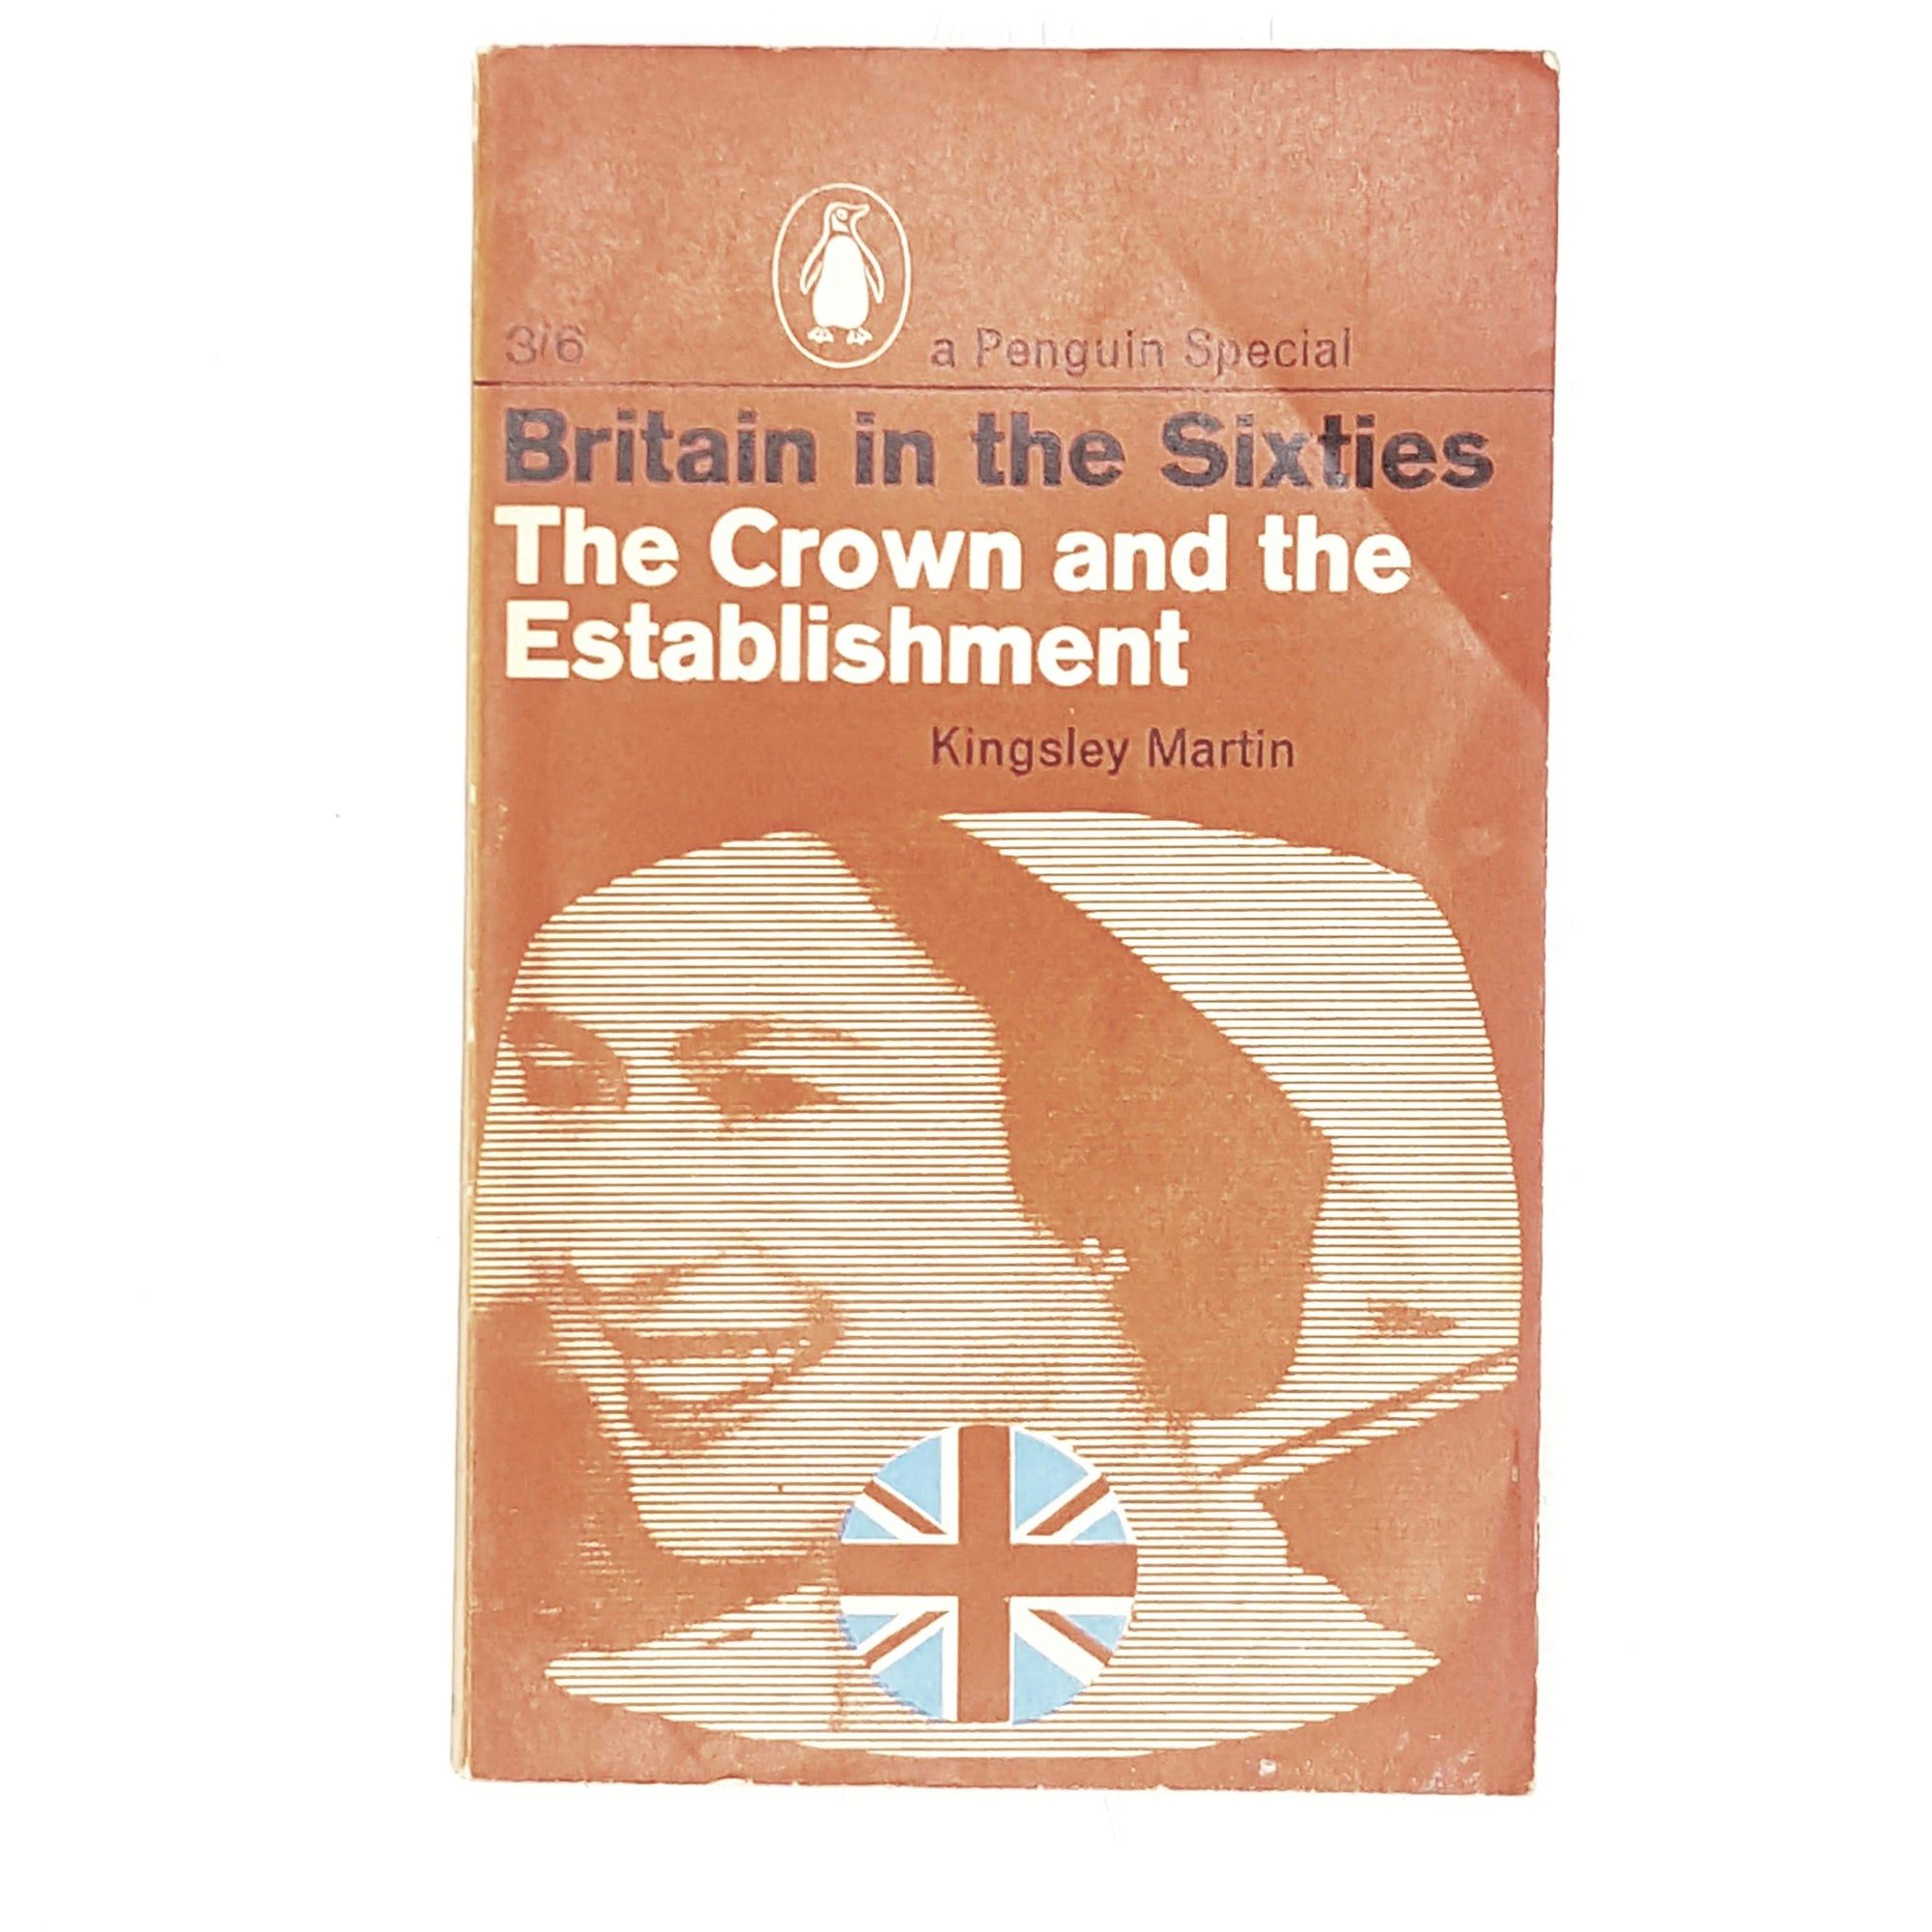 Vintage Penguin: Britain in the Sixties - The Crown and the Establishment 1963